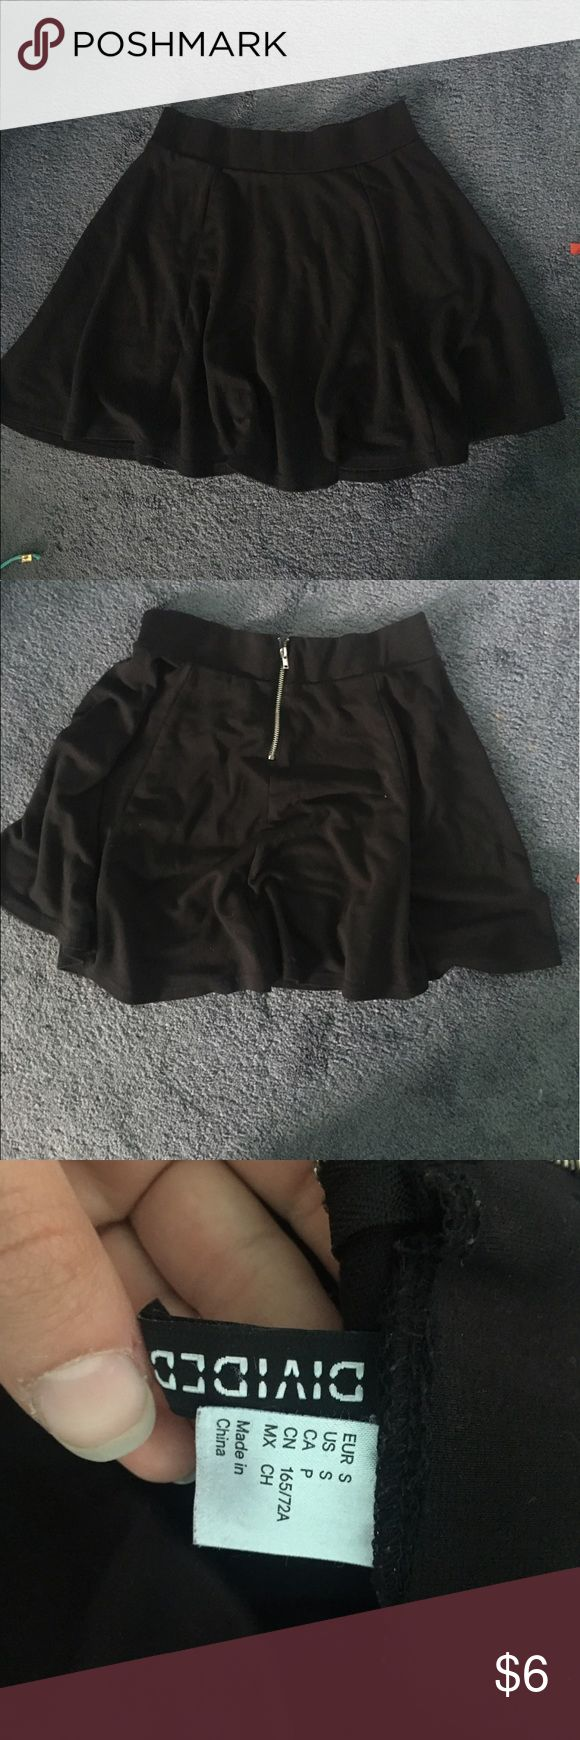 🖤 Black circle skirt from h&m 🖤 Perfect black circle skirt that can be worn high waisted! Zips in the back, super stretchy waist band. Size small! H&M Skirts Circle & Skater